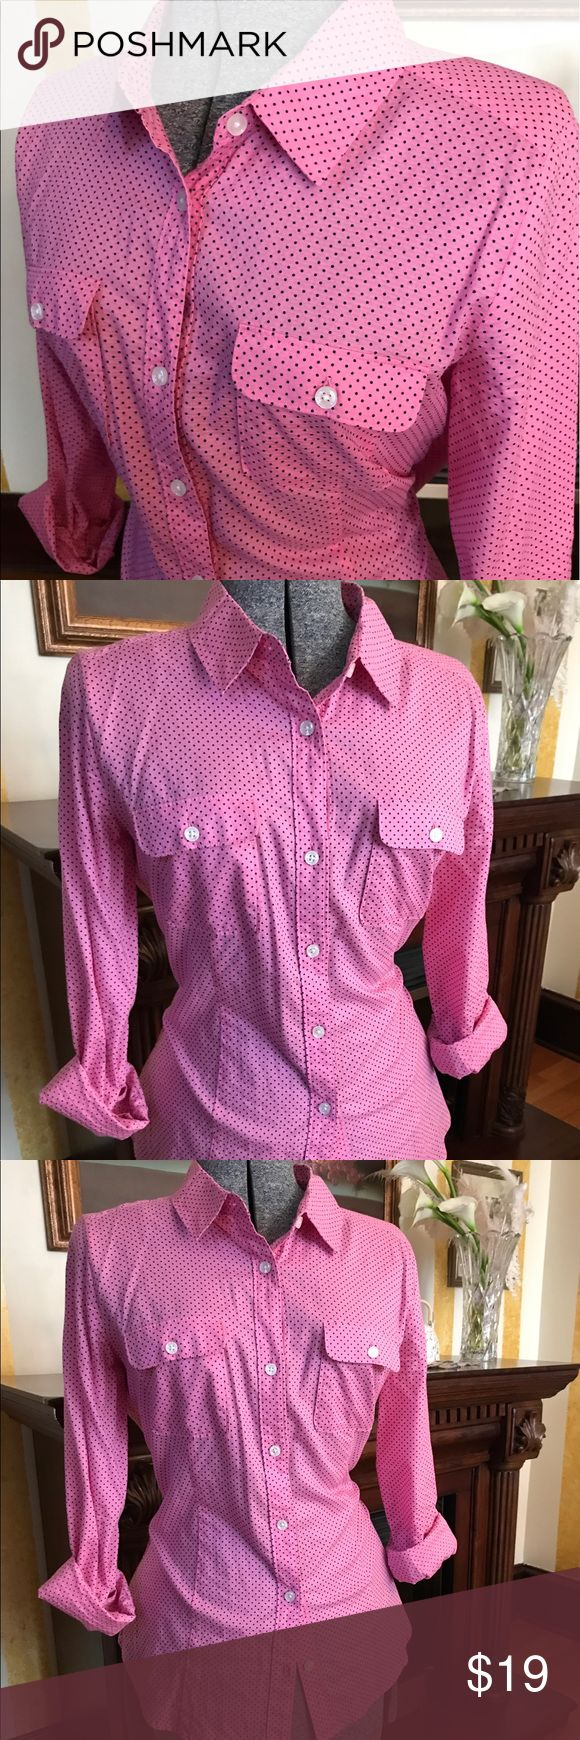 Anne Taylor Loft Blouse size Medium Super cute pink with black polka dot! Great for casual wear and the spring/summer time! Anne Taylor Loft Tops Button Down Shirts